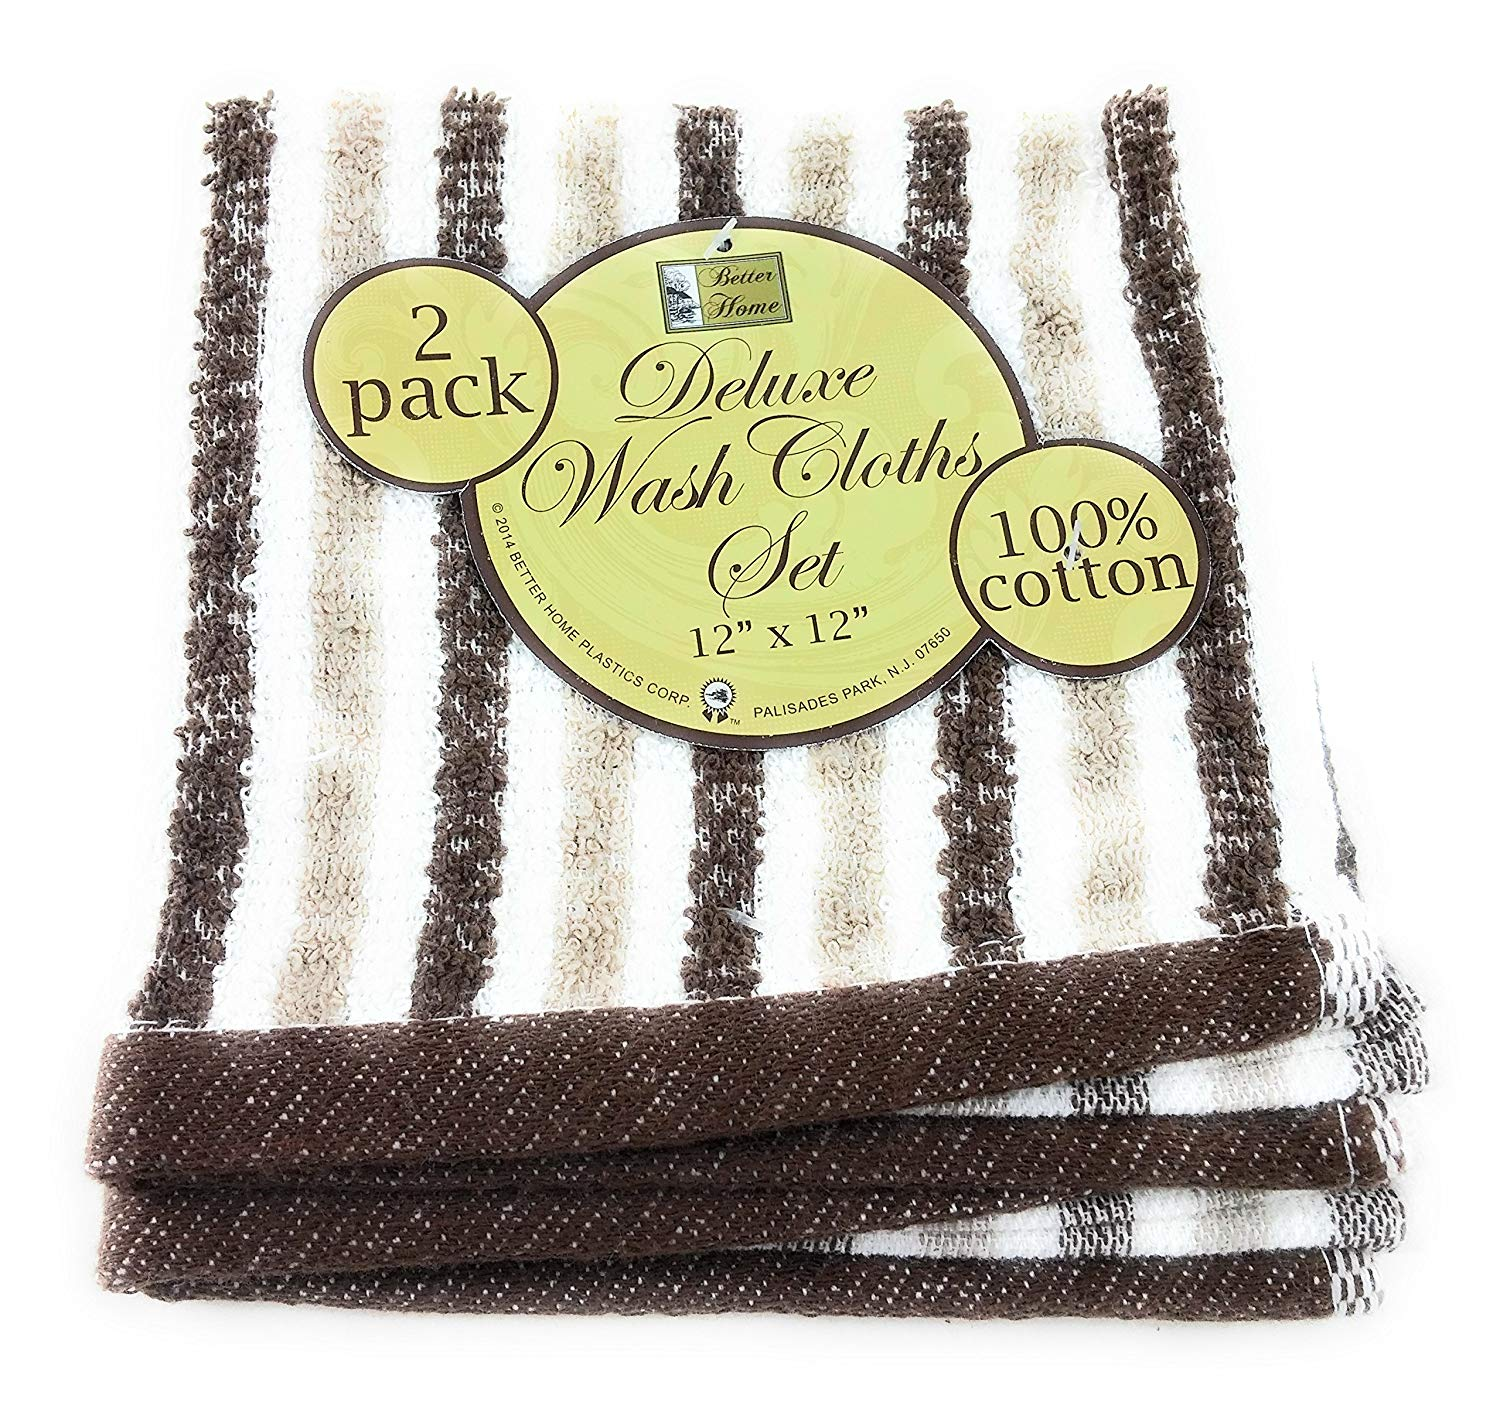 2 pack Better Home Cotton Striped Deluxe Wash Cloth (Brown)